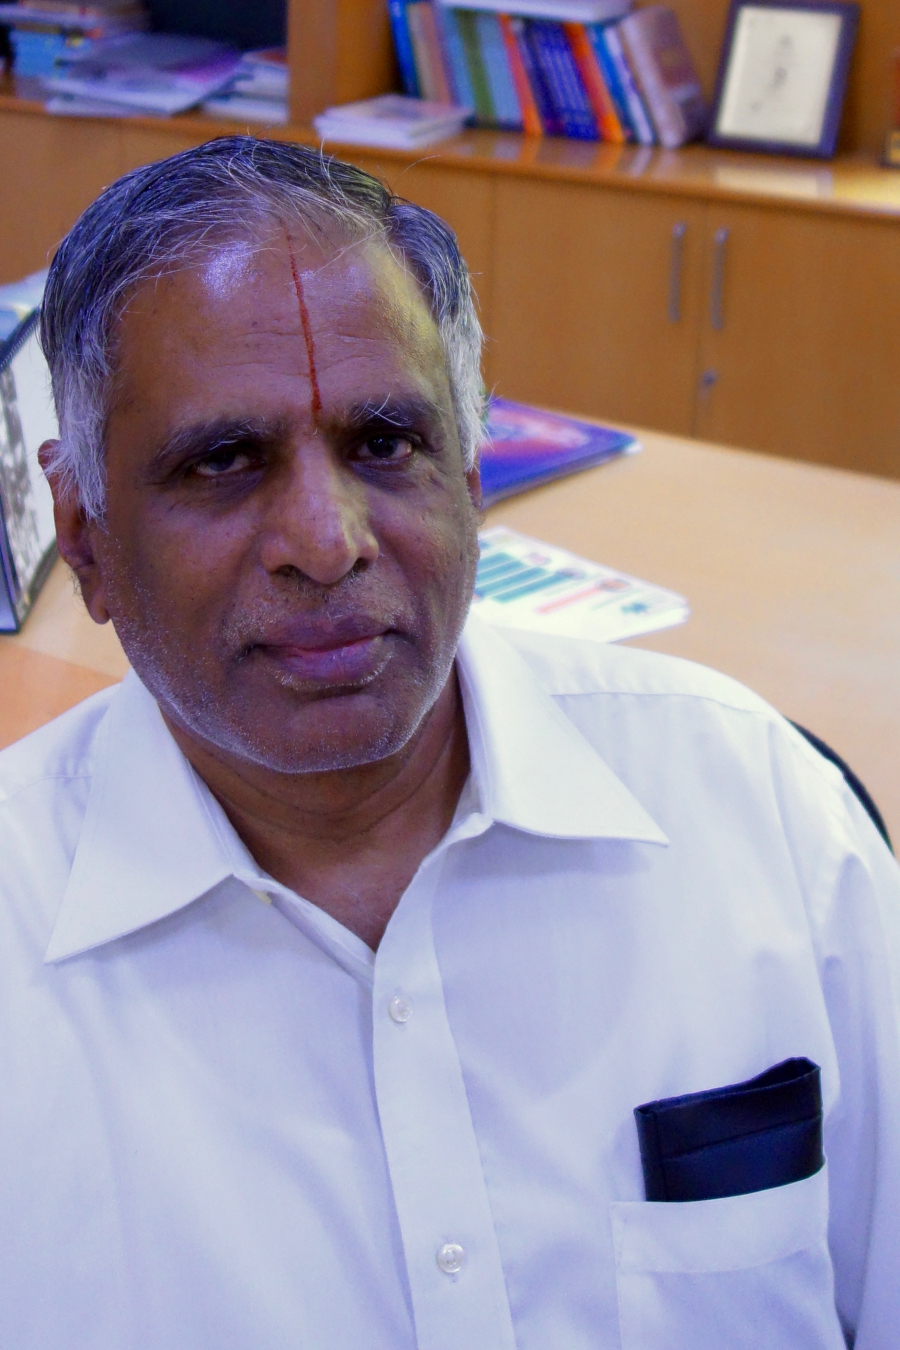 Professor S. Sadagopan heads Bangalore's International Institute for Information Technology